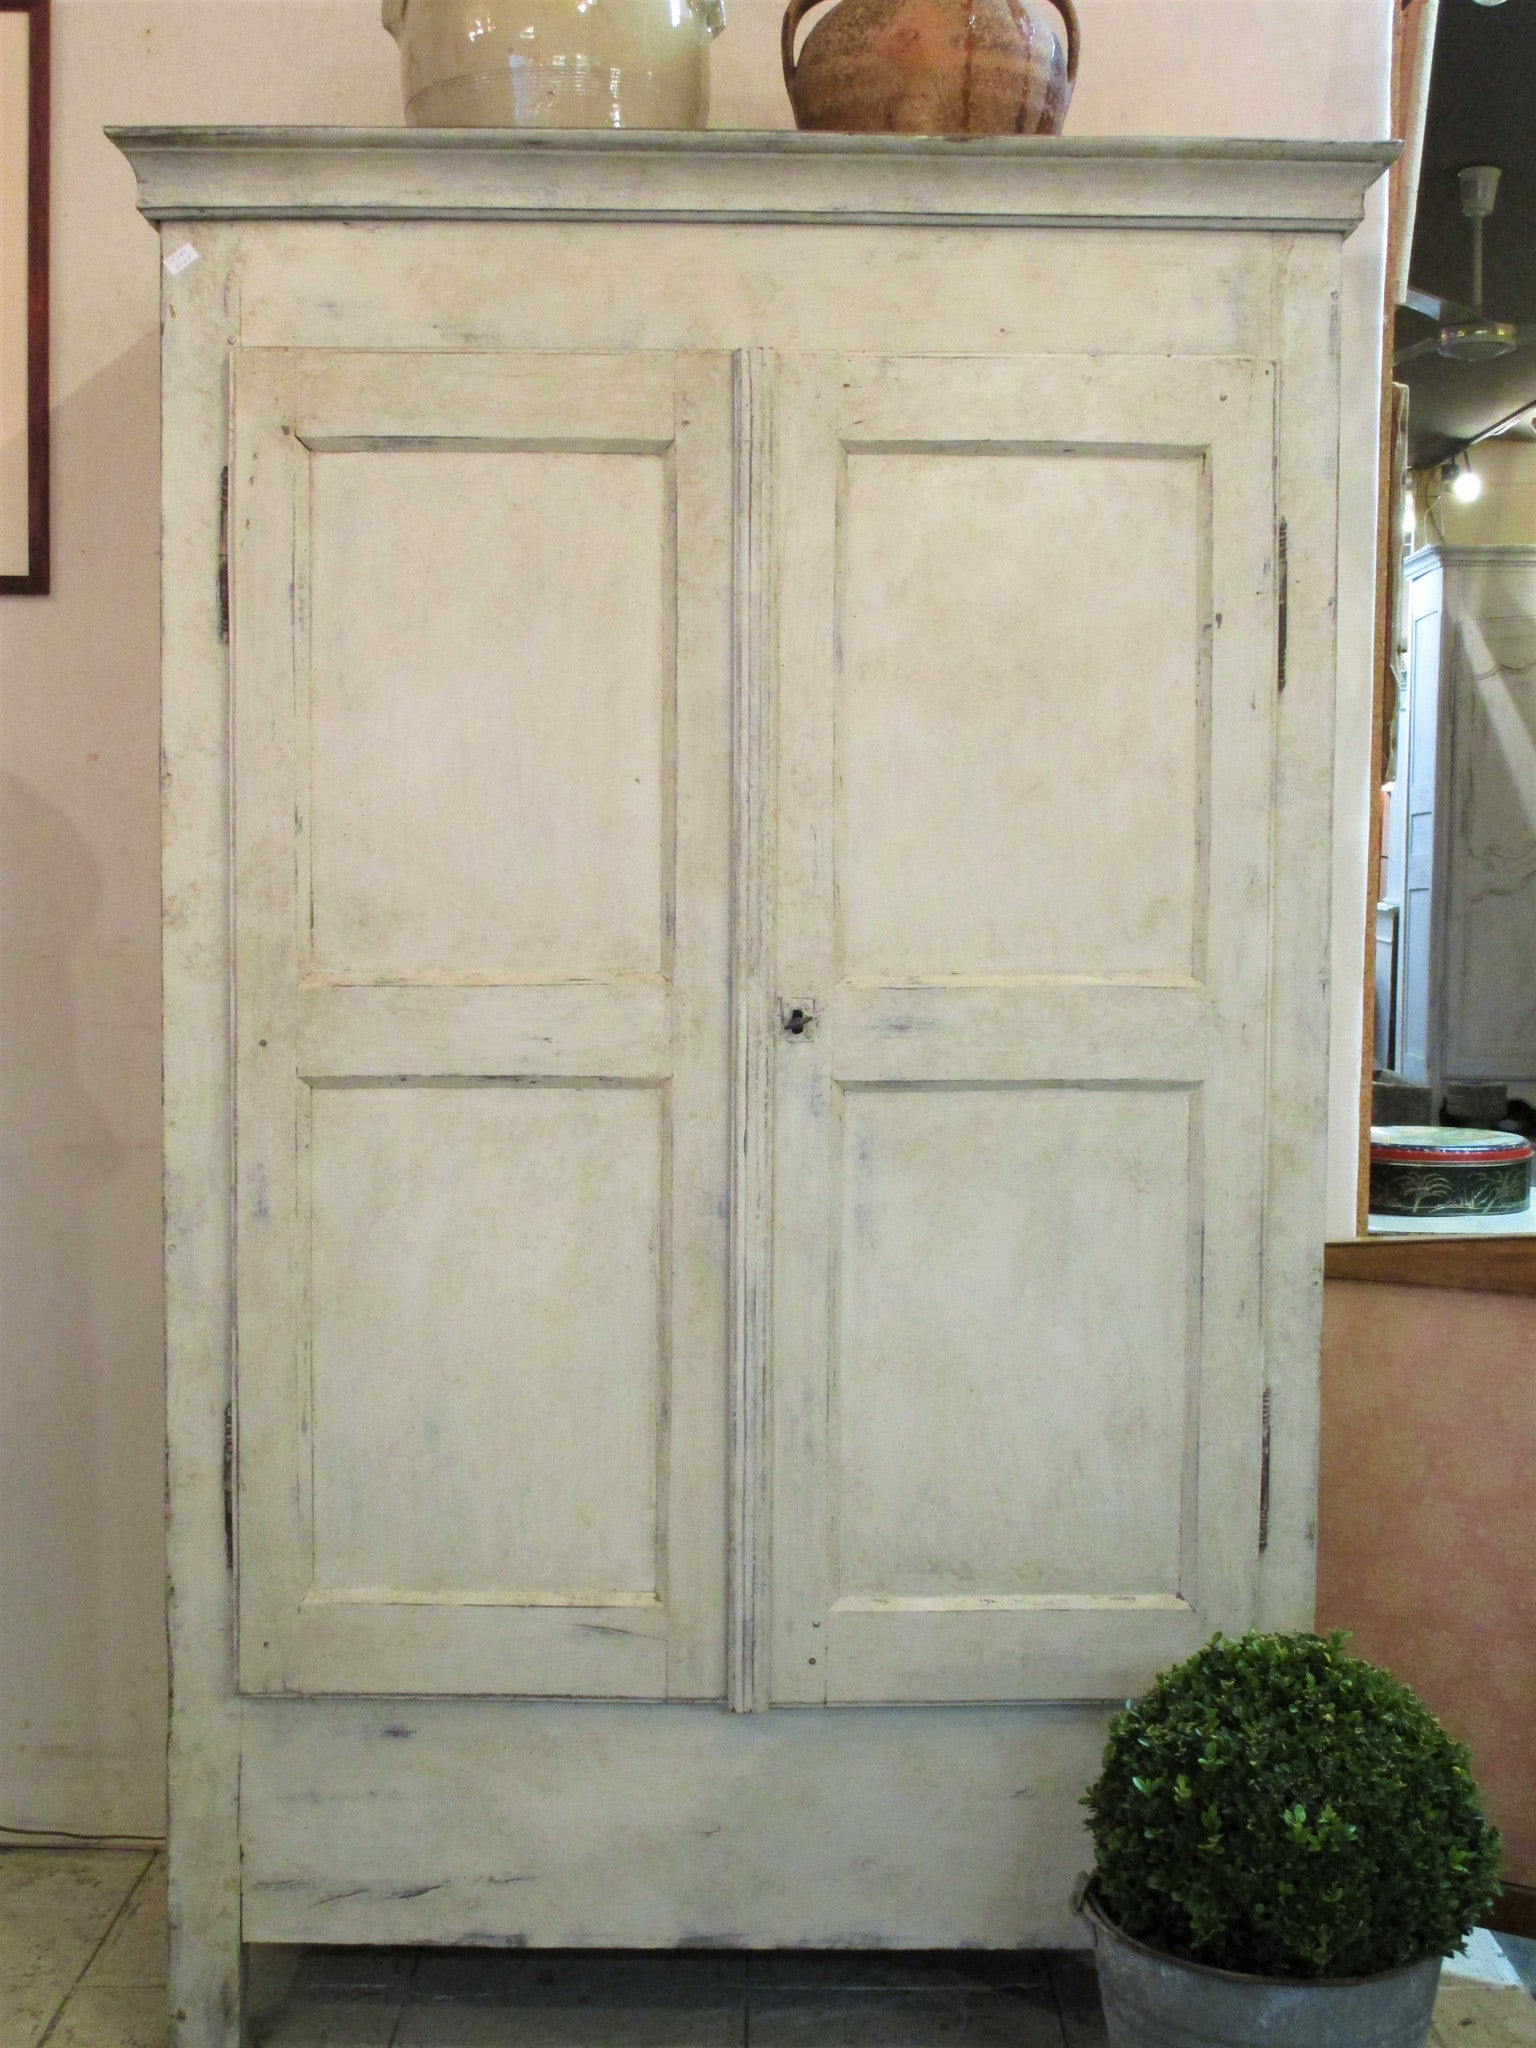 19th century armoire from Ardeche